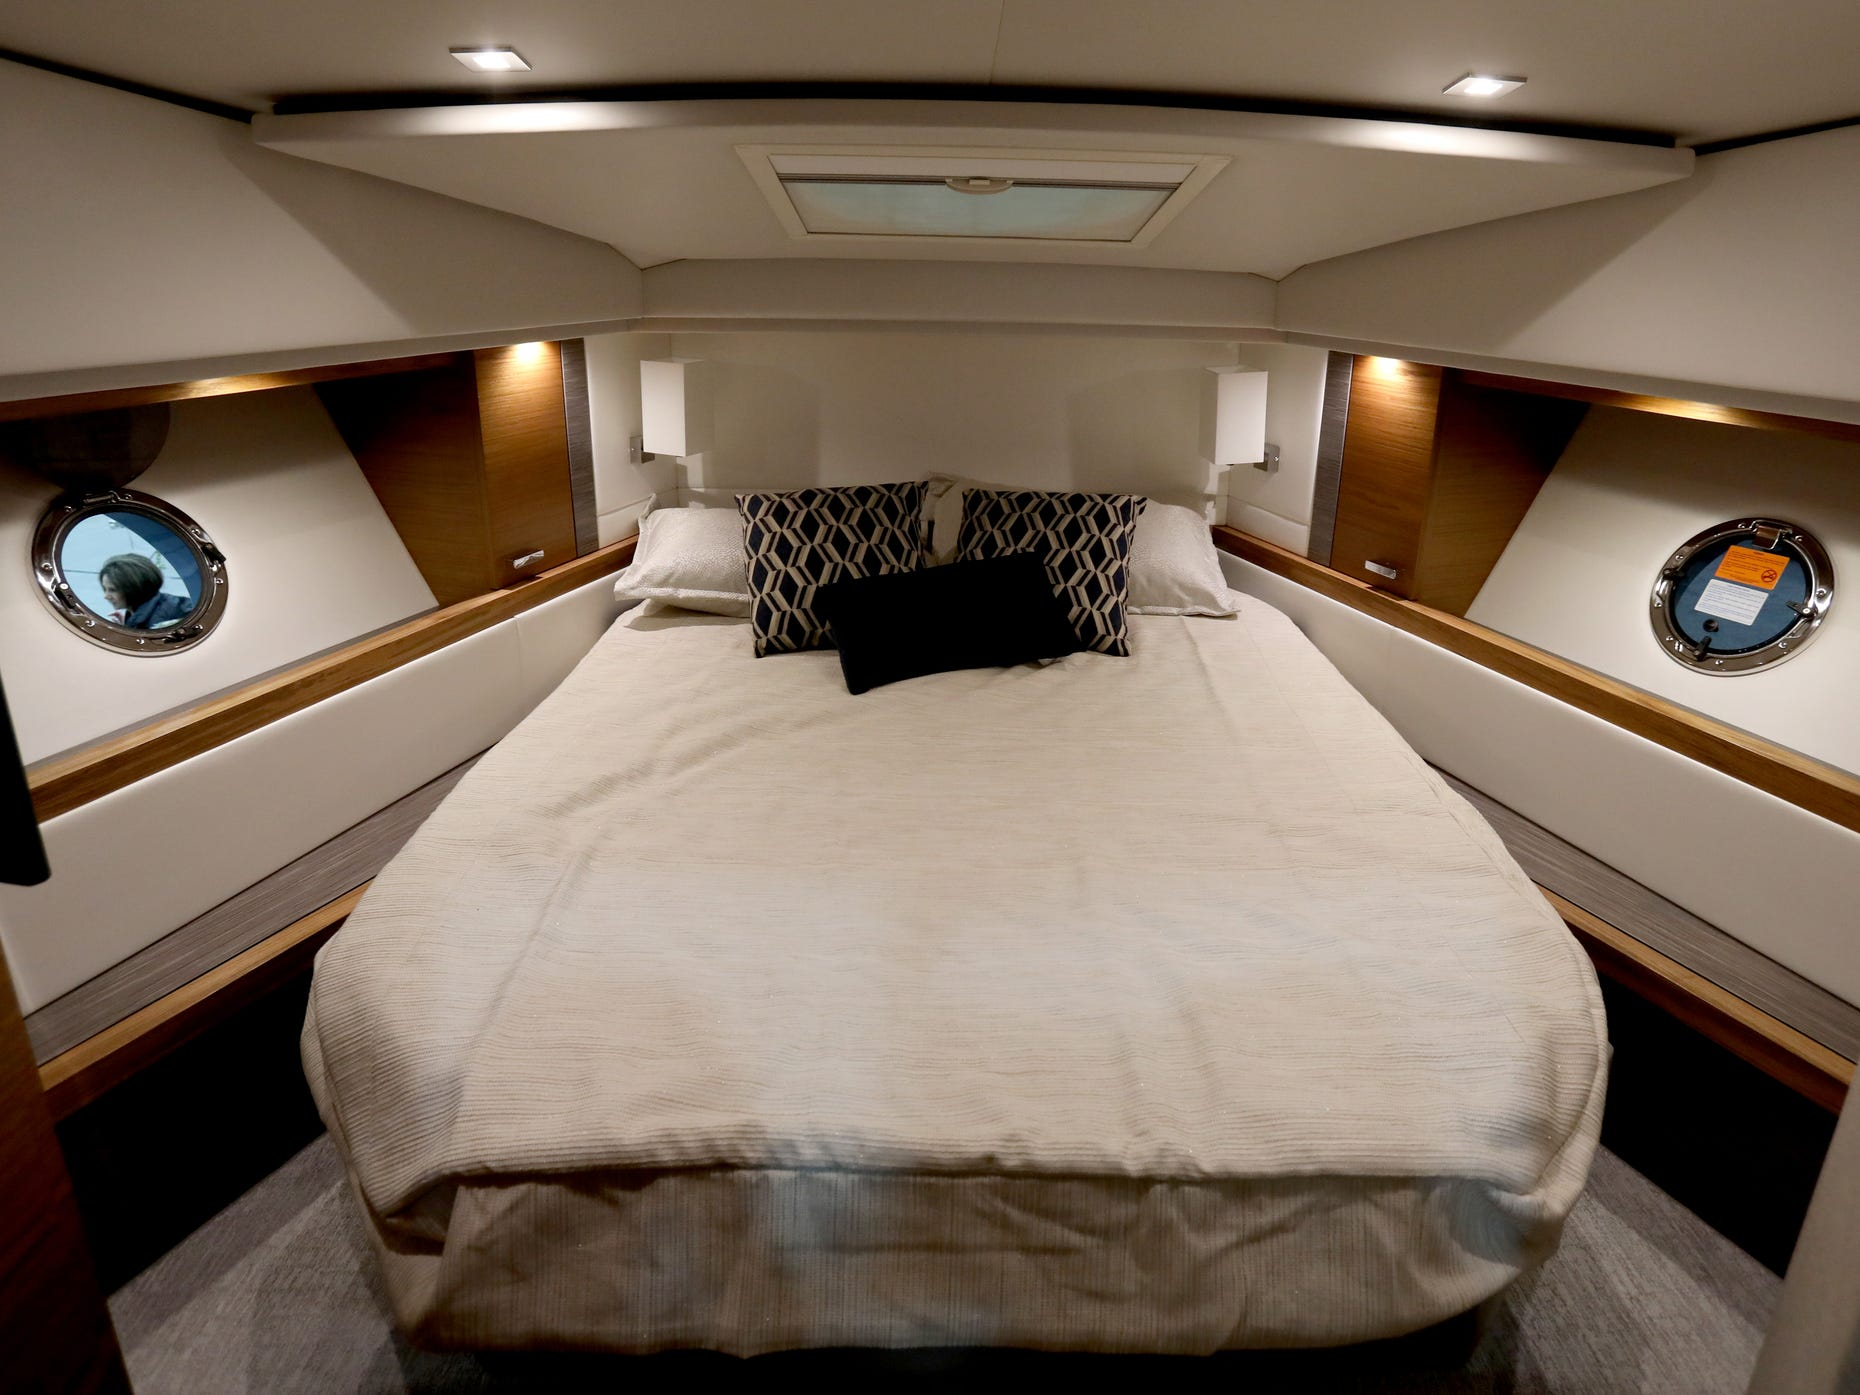 The interior view of the main bedroom inside the Tiara 39 foot Coupe for sale at $695,000 at the Skipper Buds display during the week long Detroit Boat Show at Cobo Center in Detroit on Saturday, February 16, 2019.